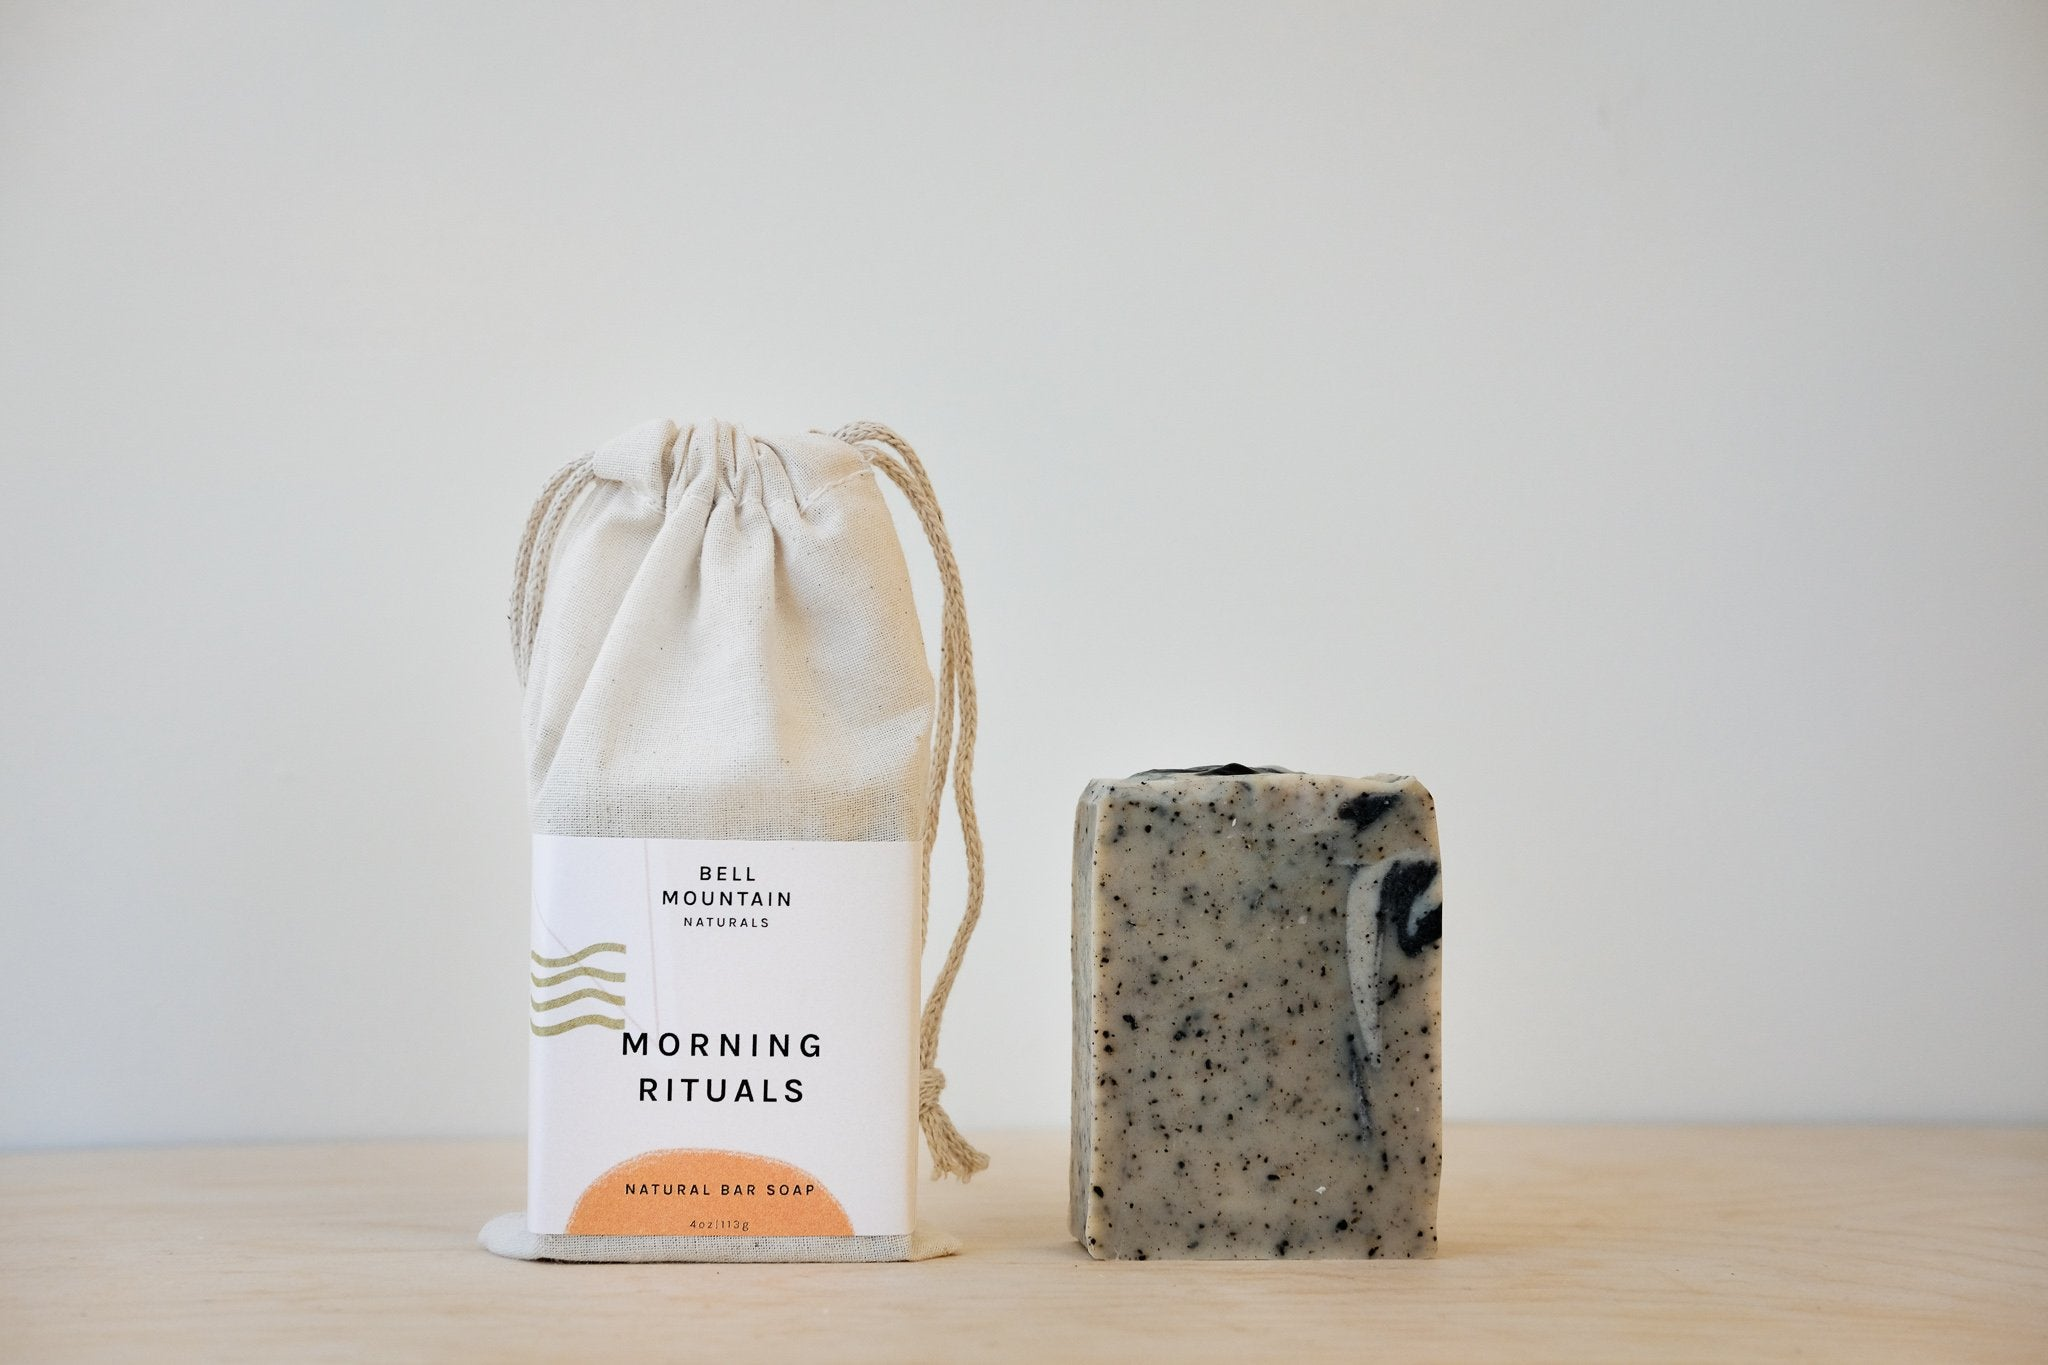 Morning Rituals Soap by Bell Mountain Naturals